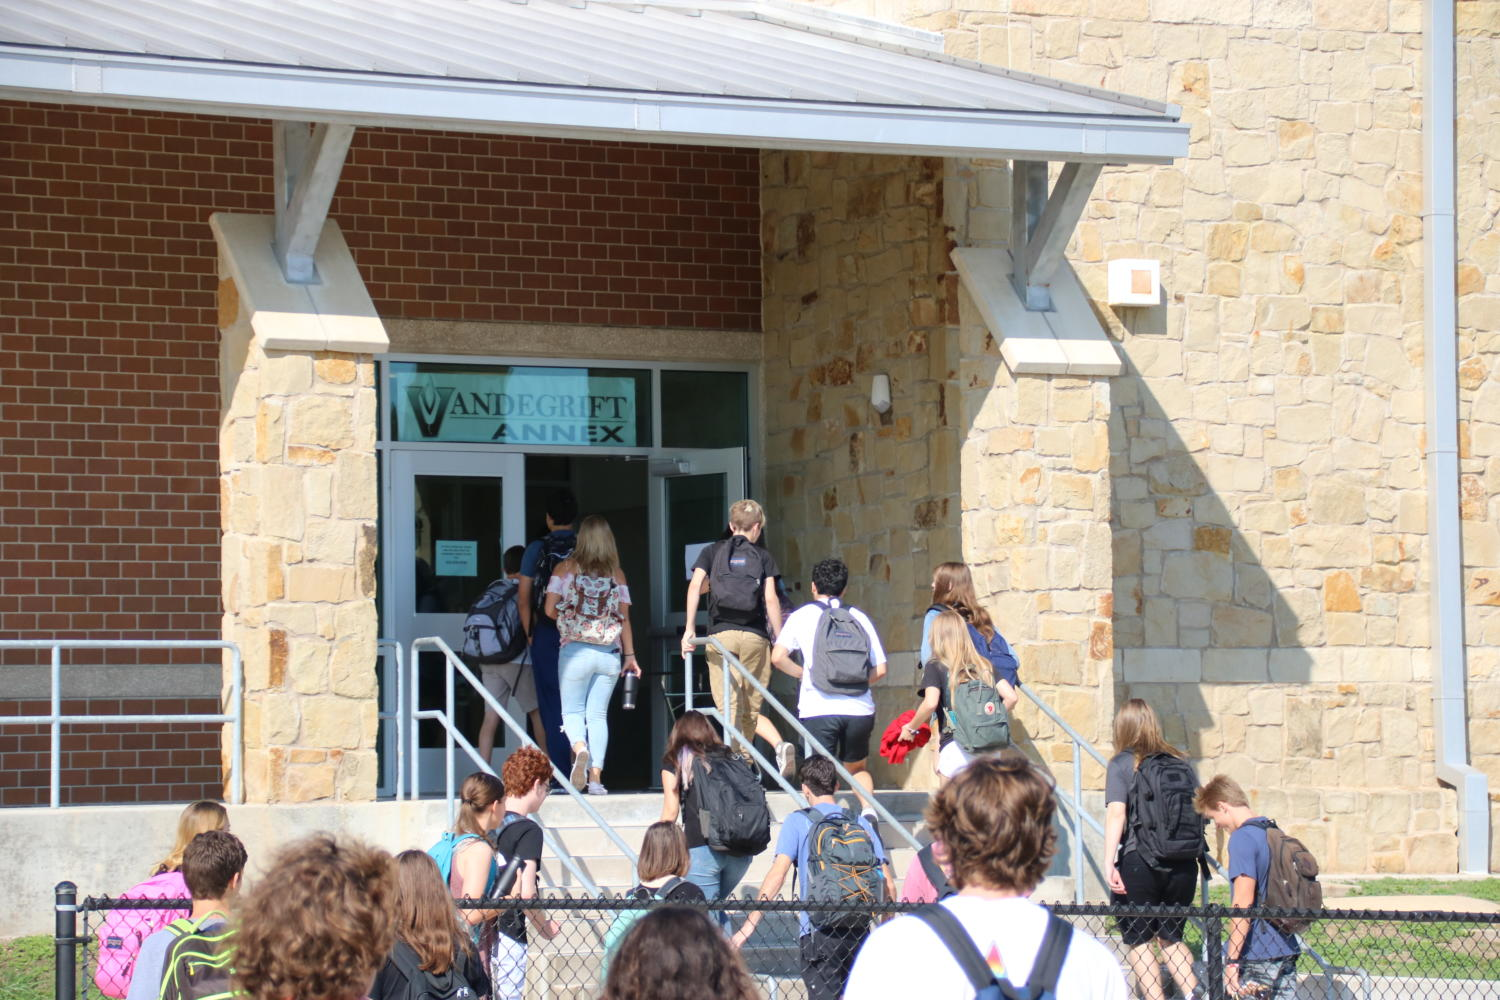 Students walk from Vandegrift to Four Points for their next class